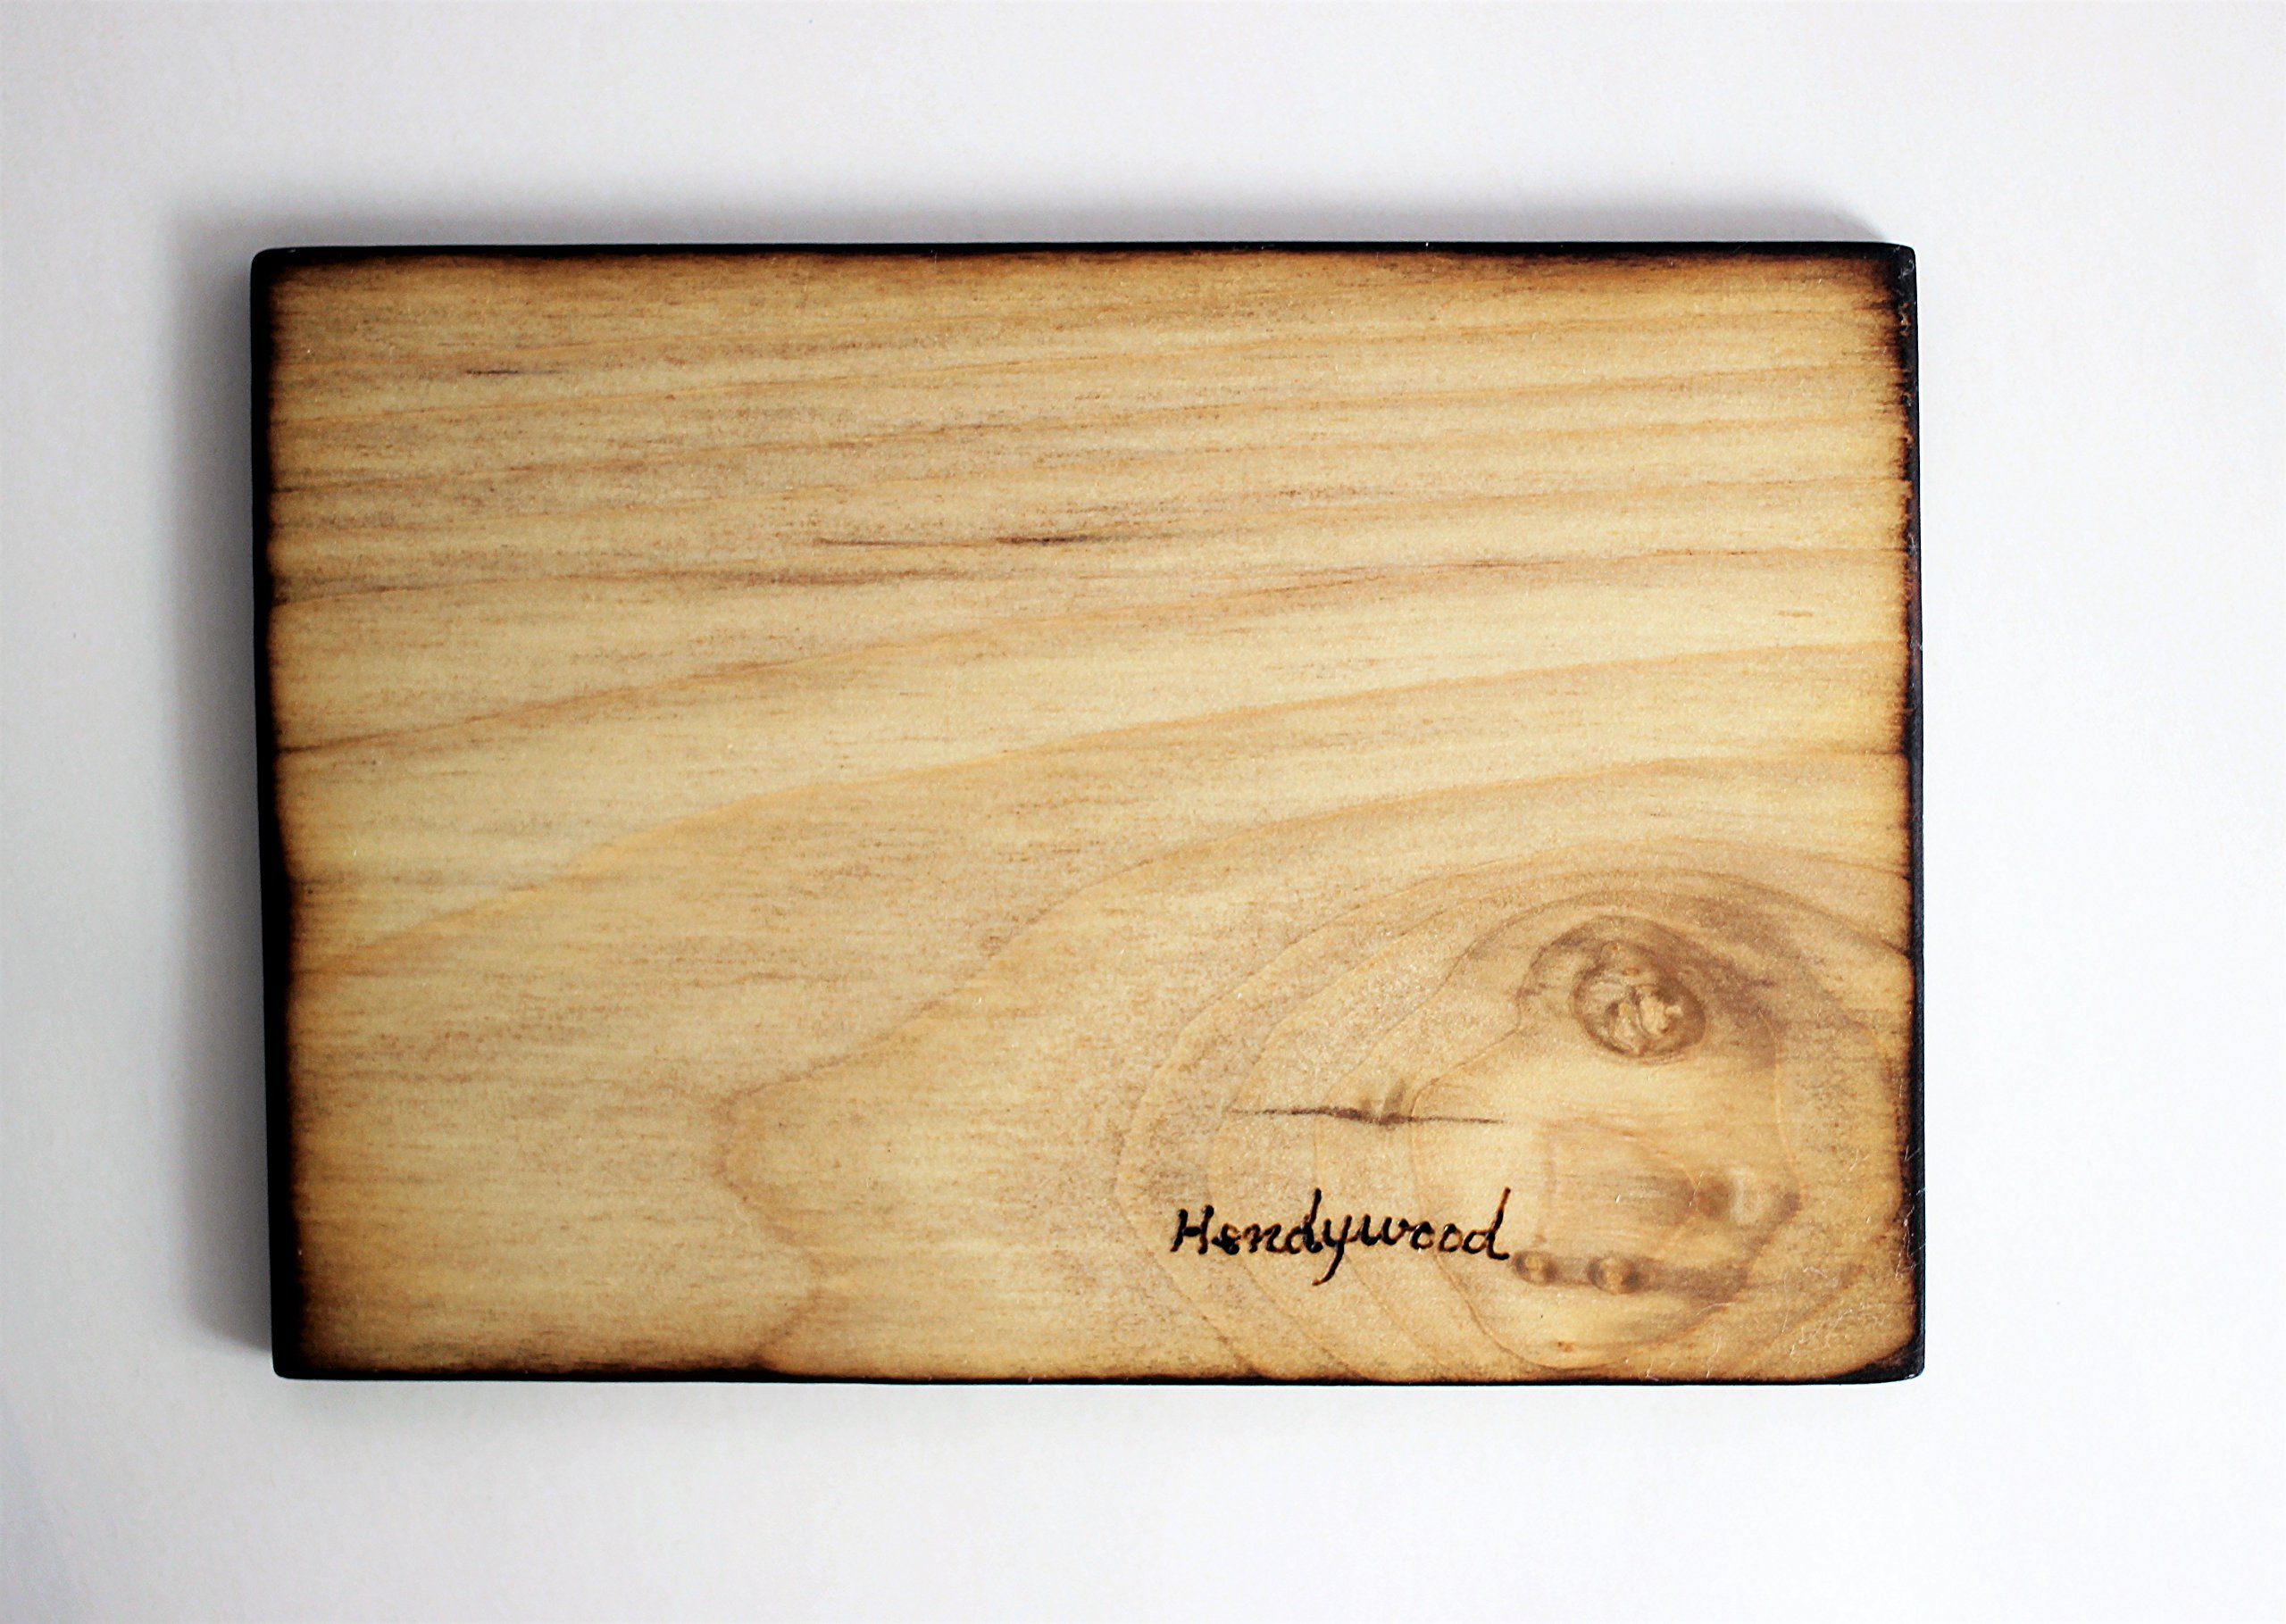 Wood Burned Polyphemus Moth Pyrography Small Woodburned Nature Insect Picture by Hendywood (Image #6)